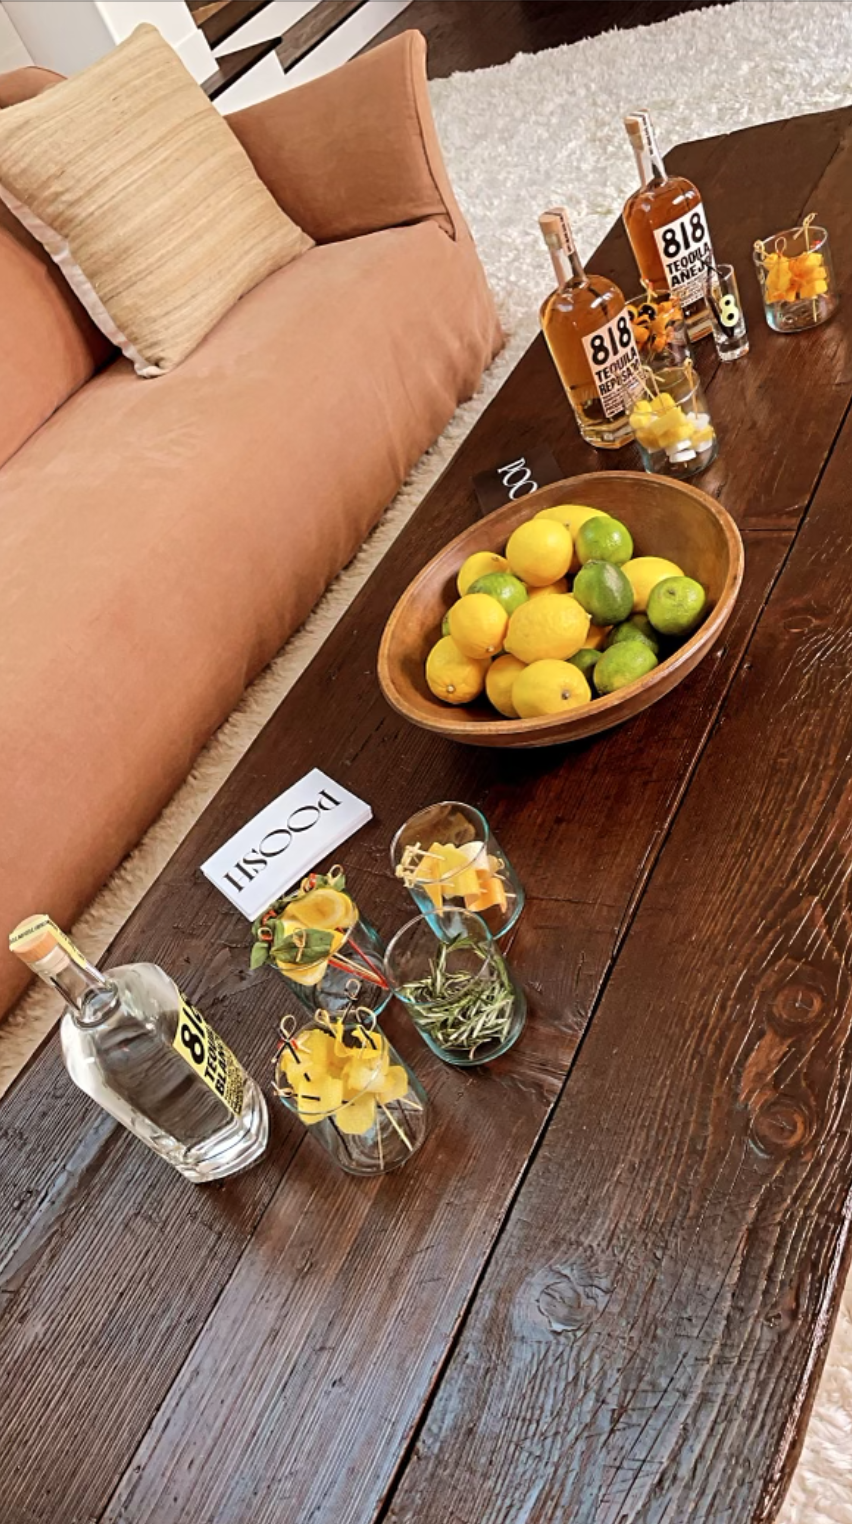 818 tequila with citrus kendall jenner